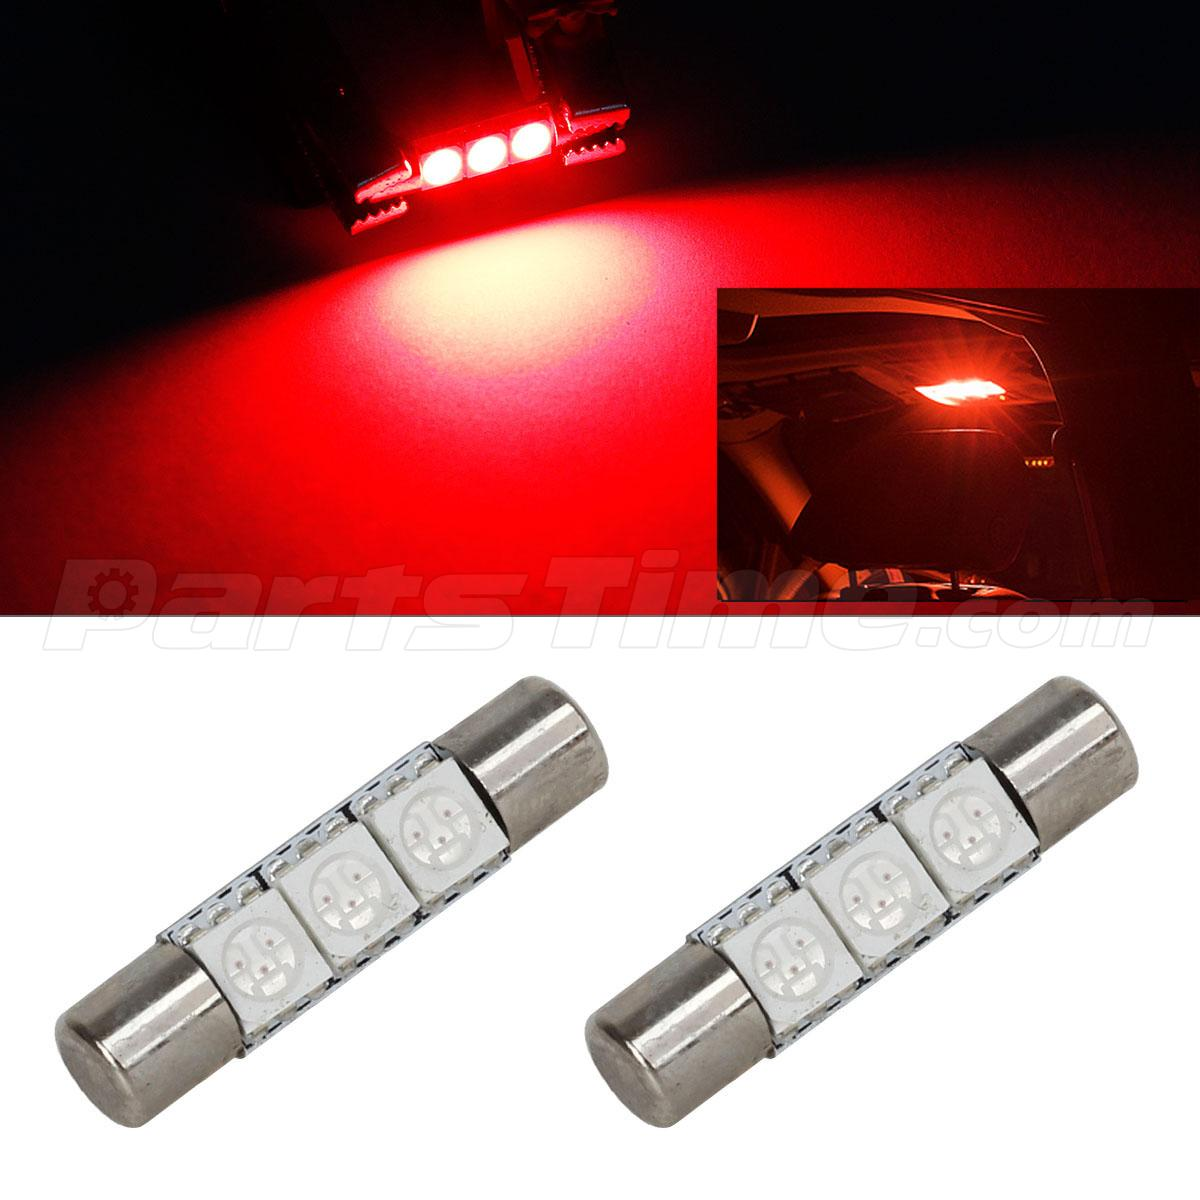 2pcs Red 3SMD 5050 LED Bulbs Car Interior Vanity Mirror Lights 6641 12V eBay